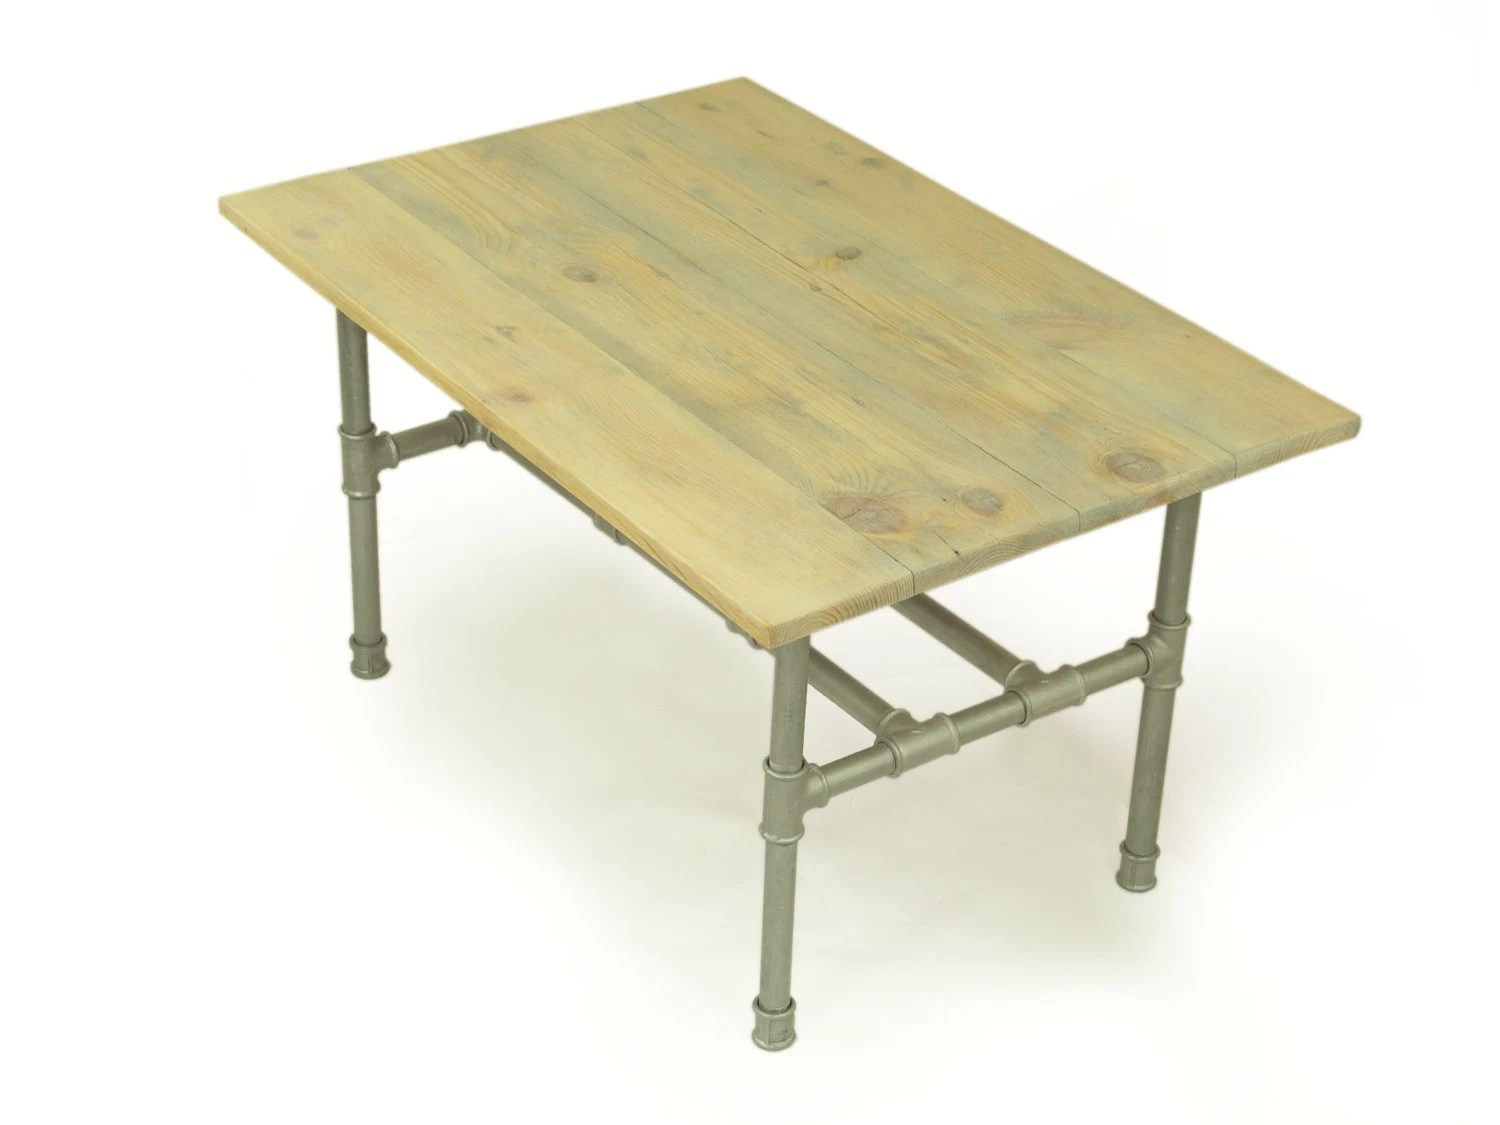 Best Loft Couchtisch Handmade Silver Coffee Table Industrial Table Of Reclaimed Planks Top On Recycled Gas Pipe Legs Table Tisch Couchtisch